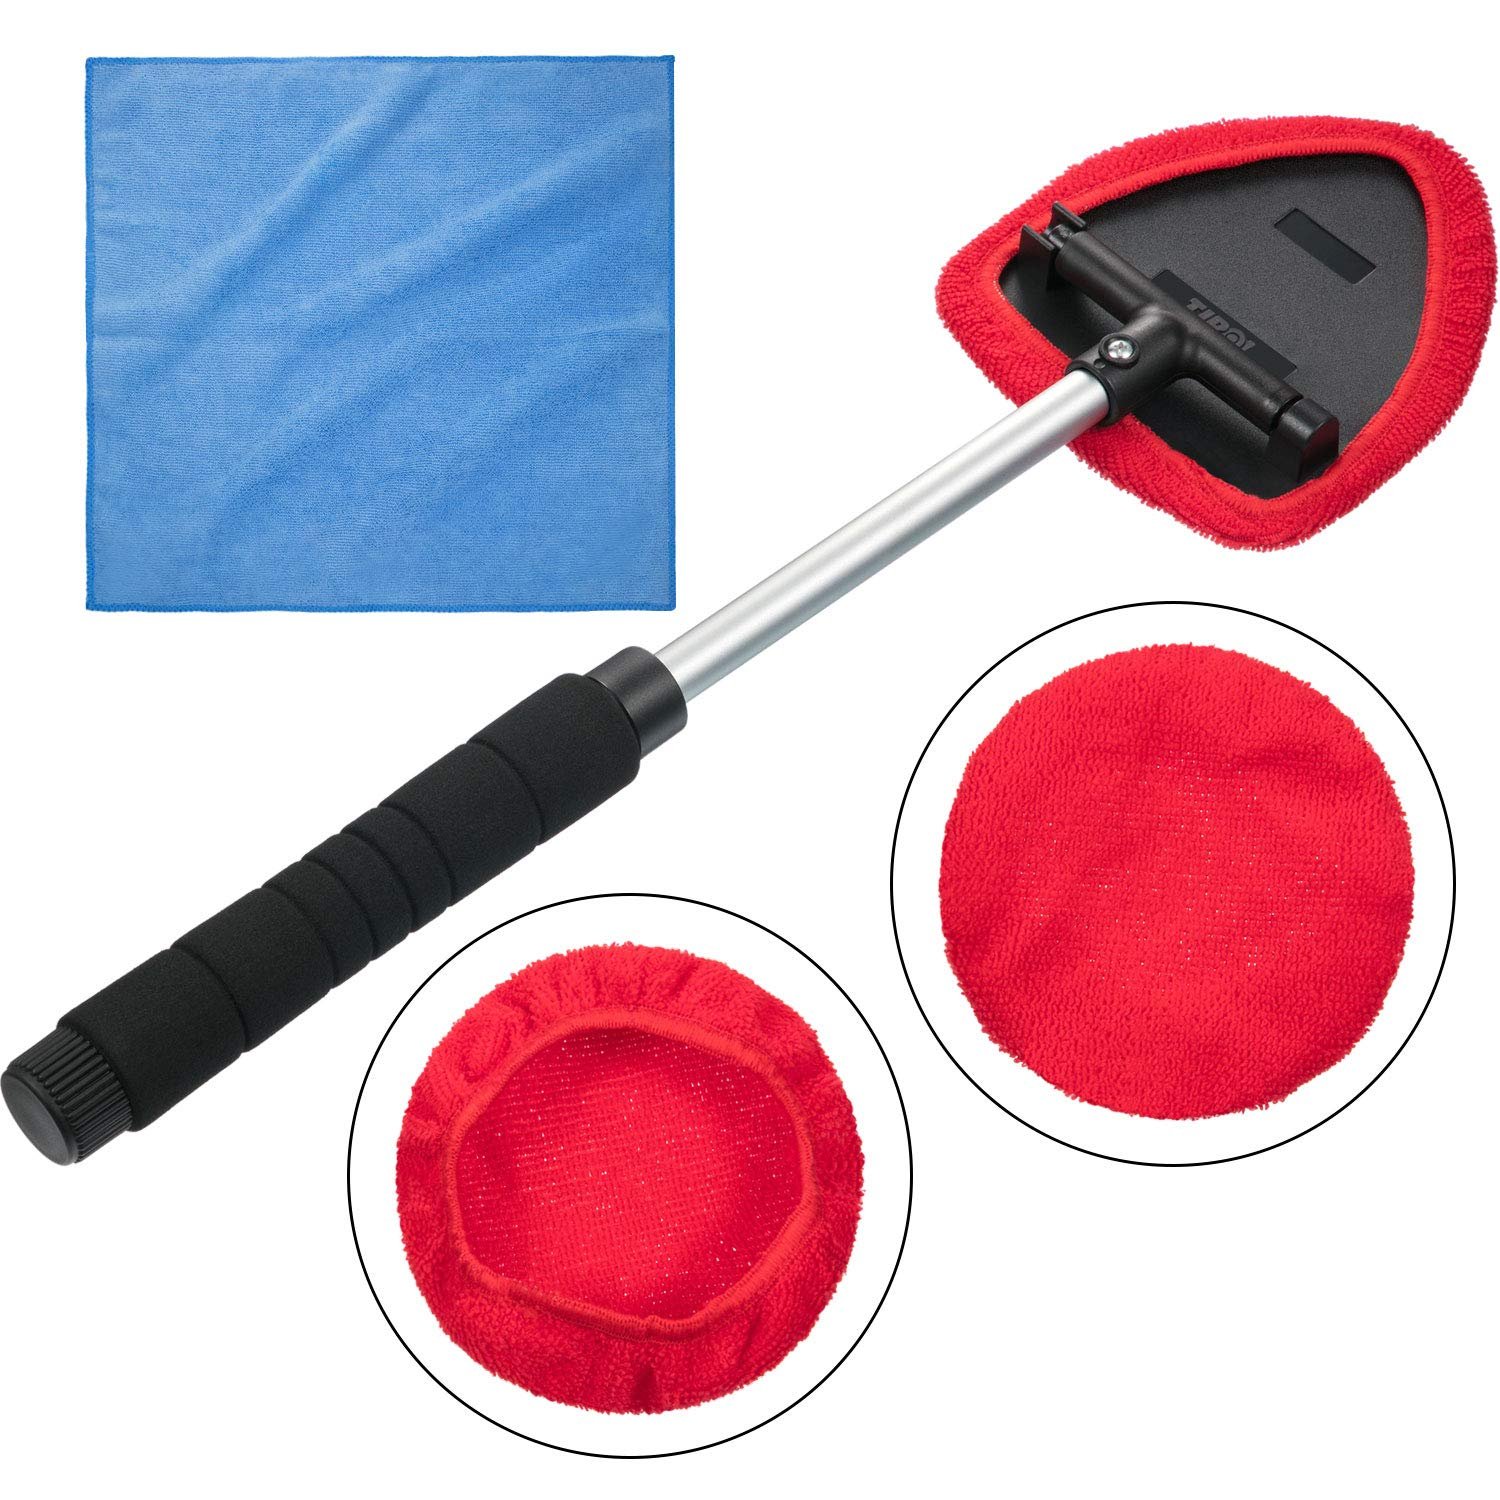 Tatuo Auto Car Windshield Cleaner, 1 Pack Extendable Handle Window Cleaner Brush Kit Comes with 2 Packs Washable and Reusable Pads and 1 Pack Microfiber Cleaning Cloth